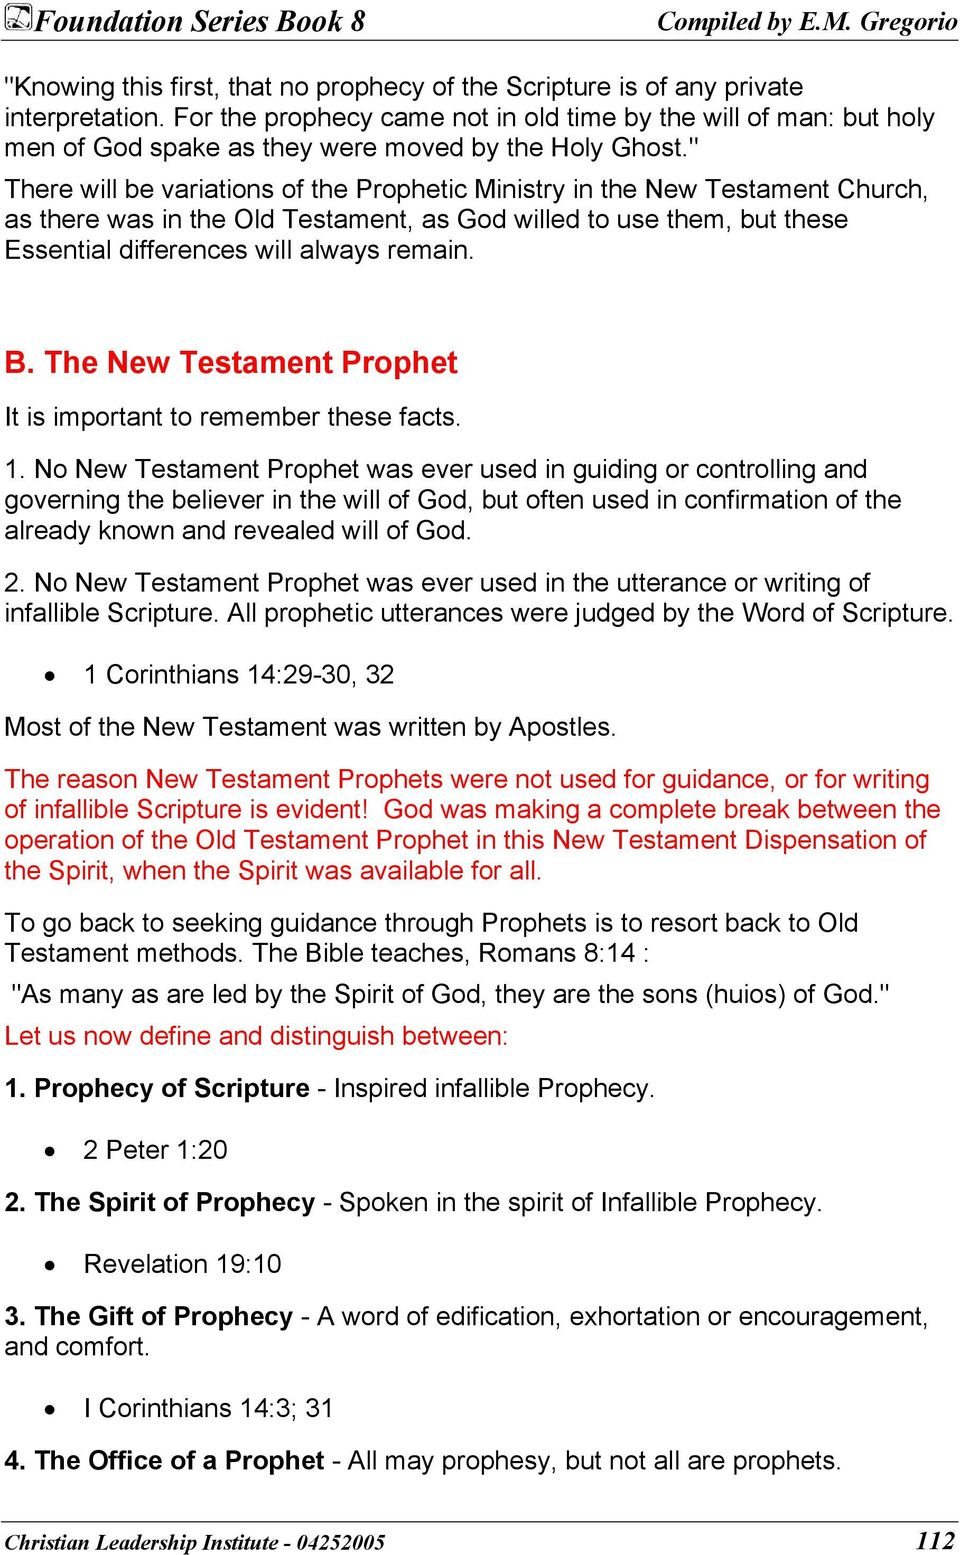 """ There will be variations of the Prophetic Ministry in the New Testament Church, as there was in the Old Testament, as God willed to use them, but these Essential differences will always remain. B."